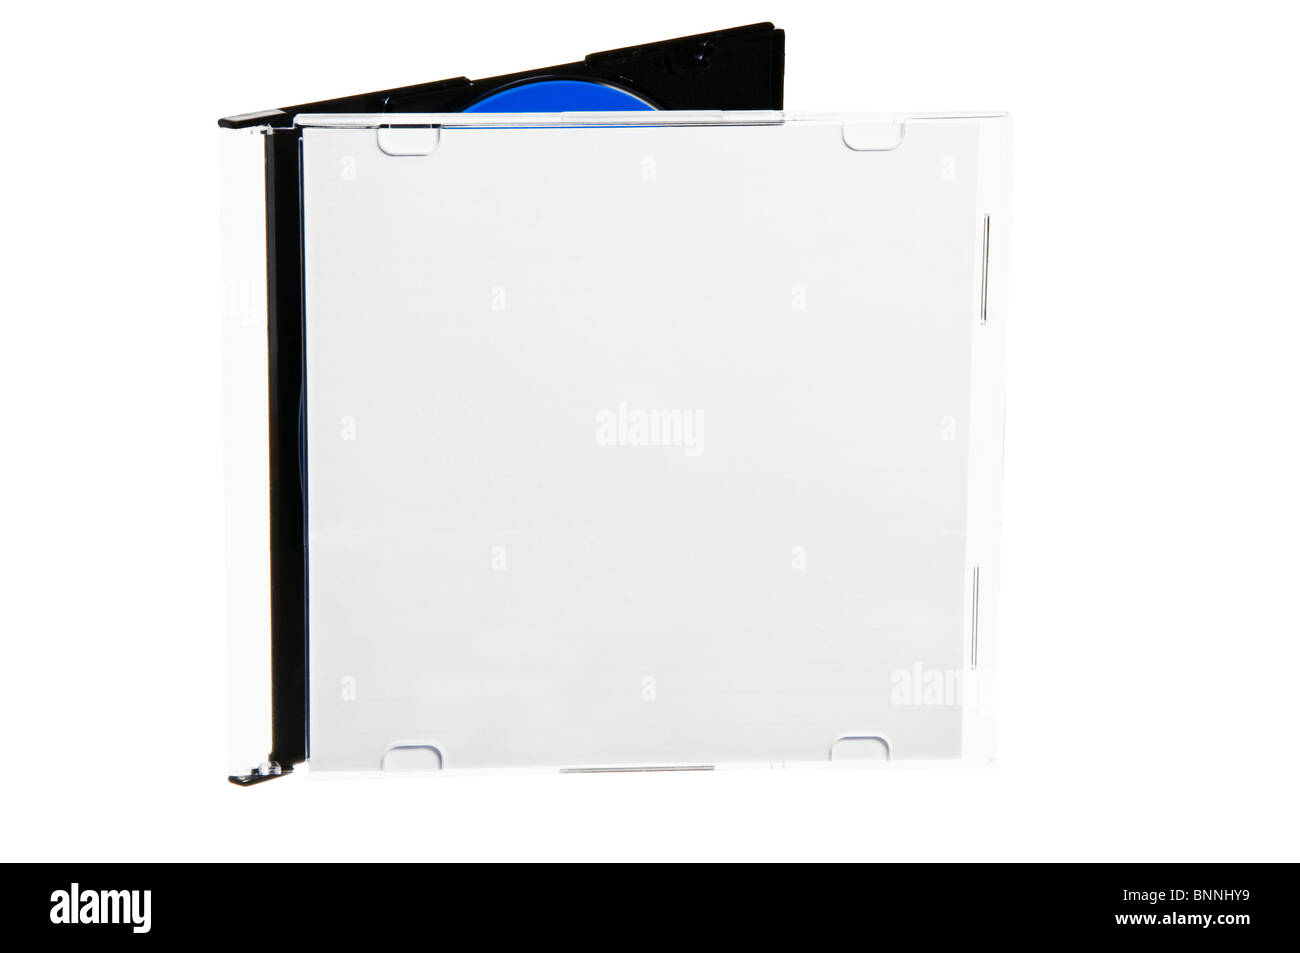 Compact disc in the box, isolated on white background. - Stock Image